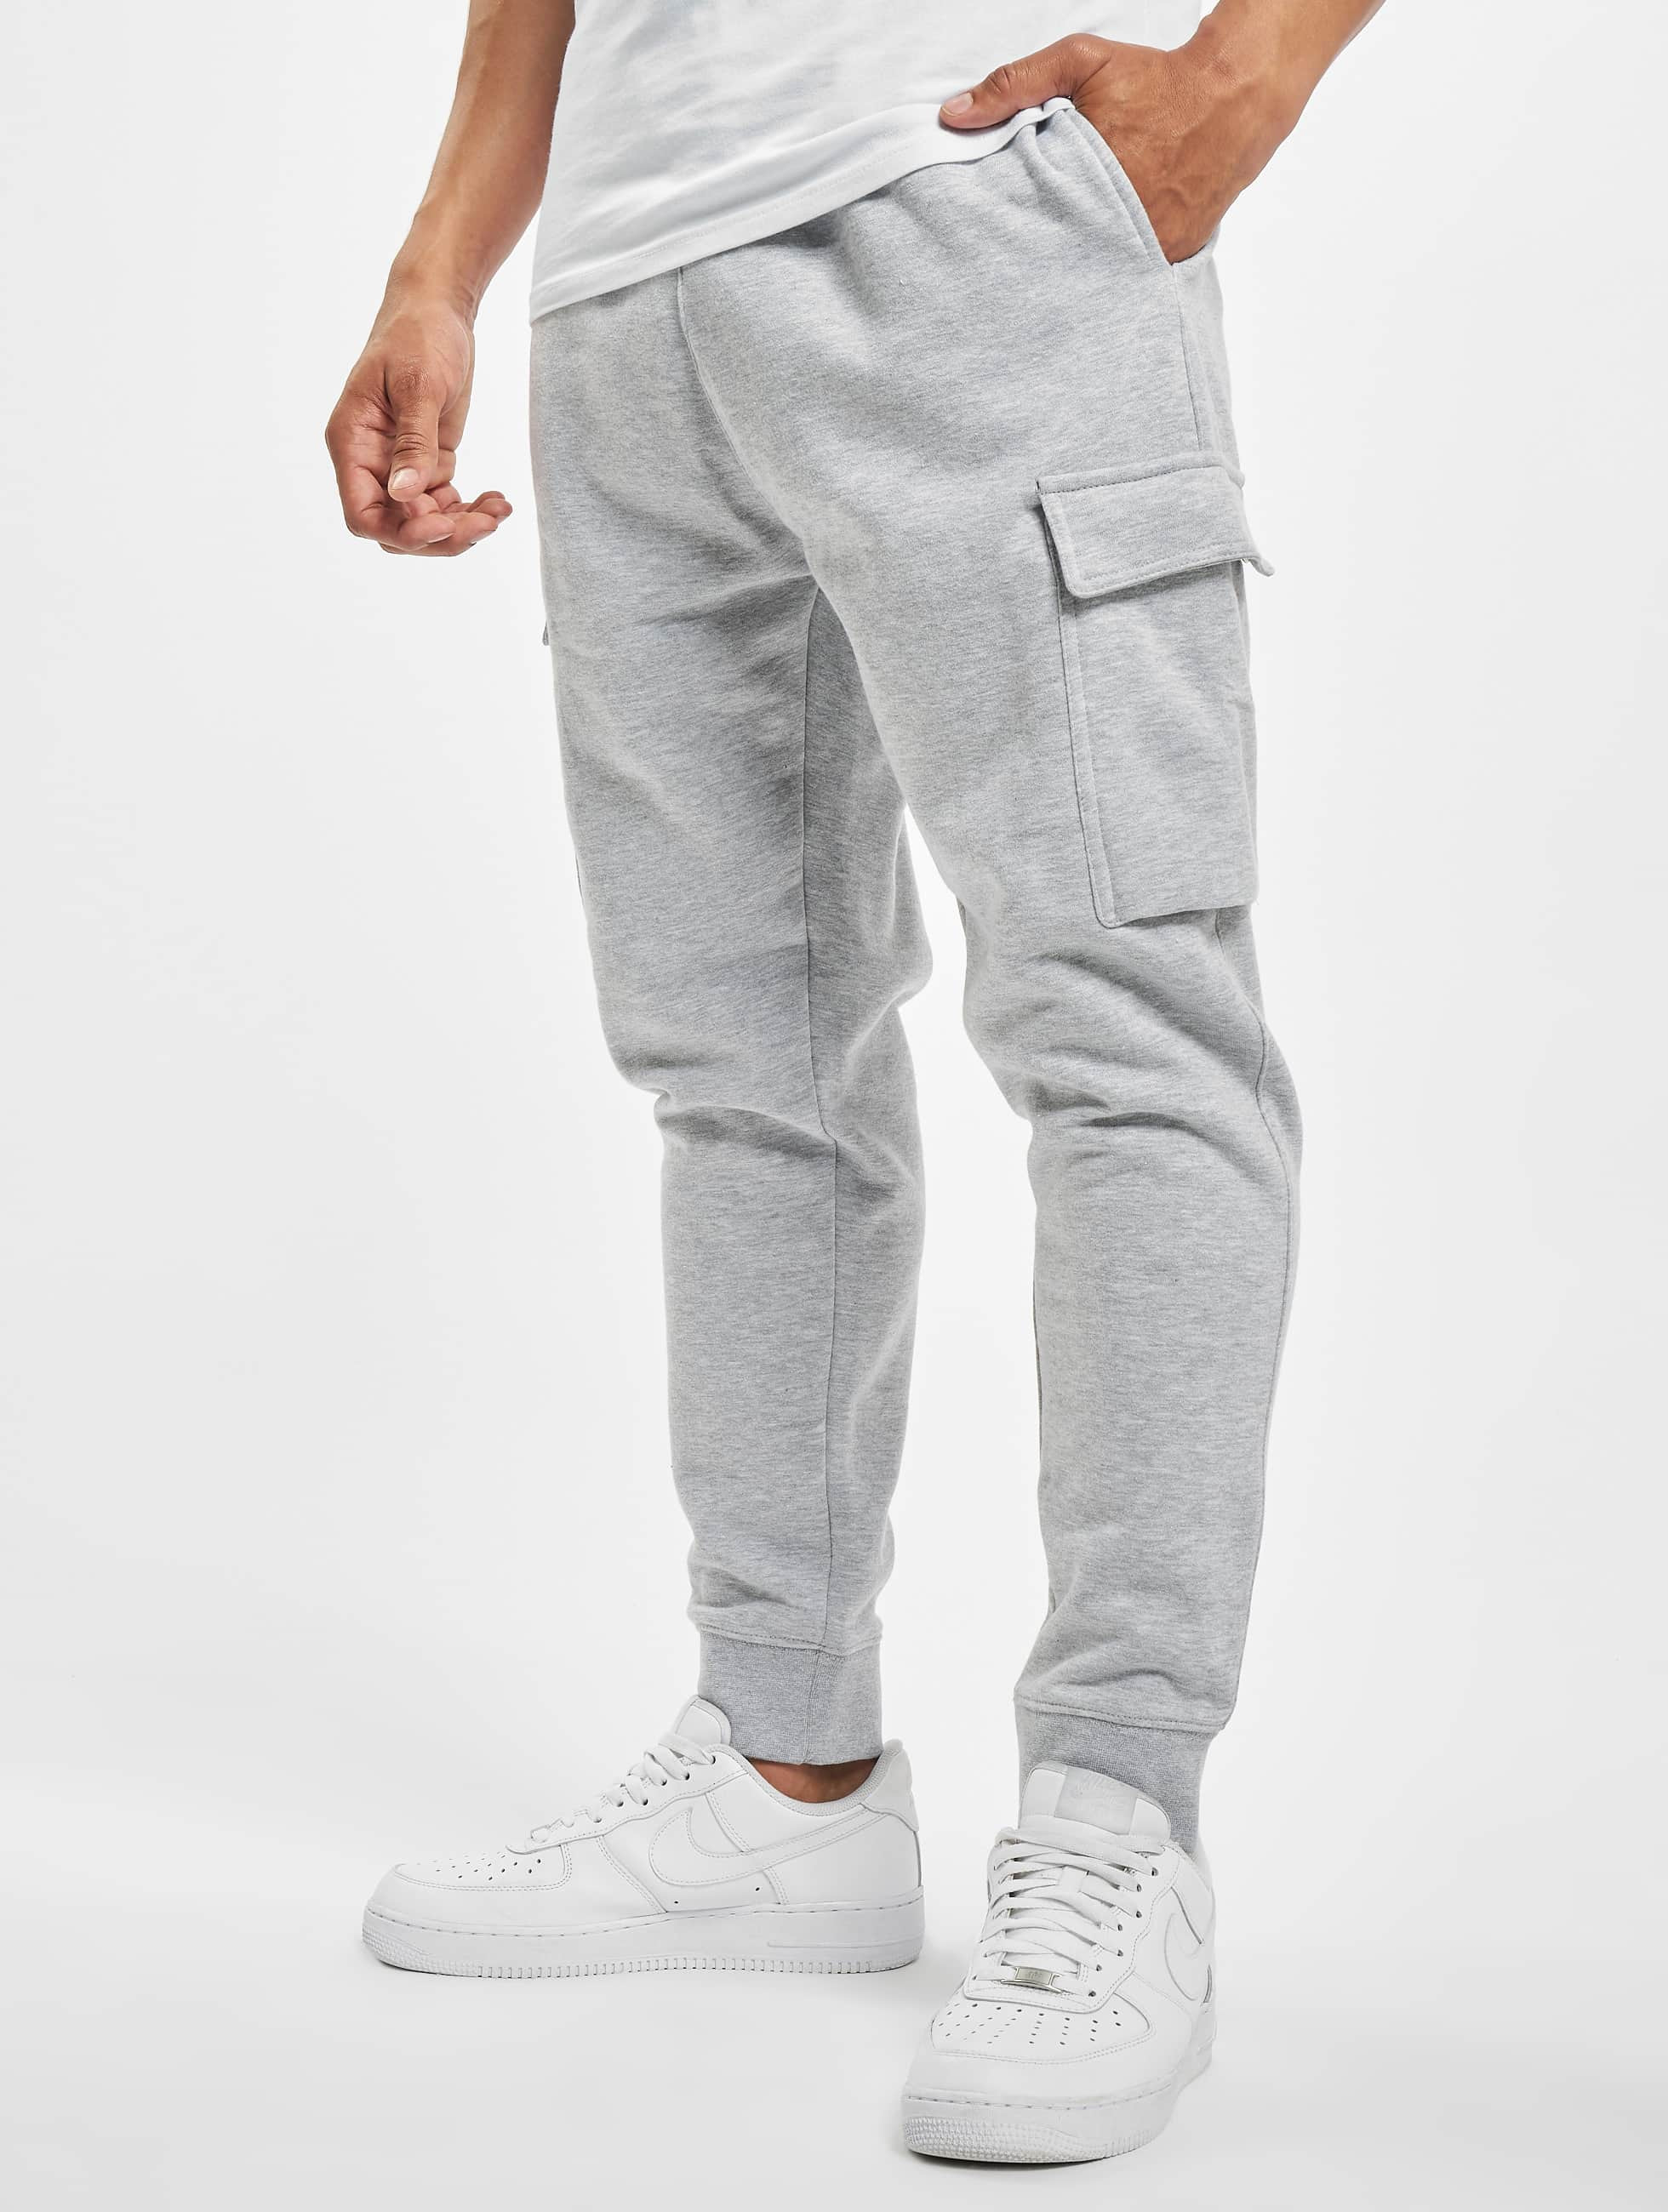 DEF / Sweat Pant Denni in grey M